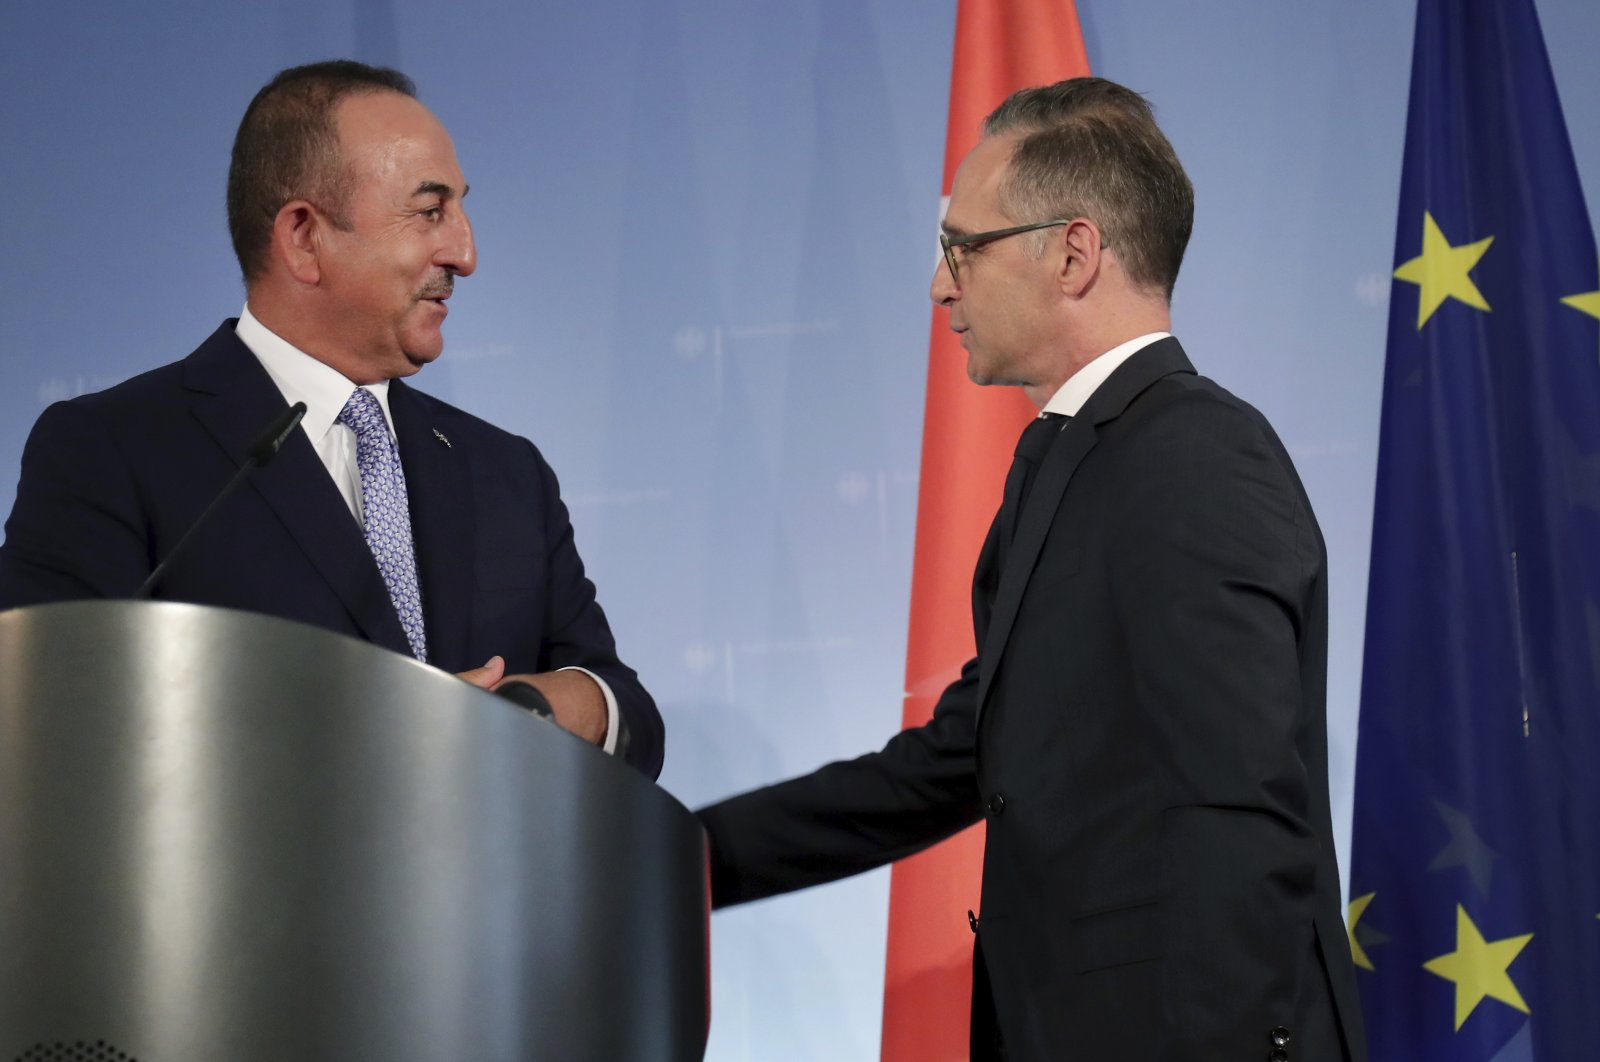 German Foreign Minister Heiko Maas (R) and Turkish Foreign Minister Mevlüt Çavuşoğlu (L) talk after a joint news conference following a meeting in Berlin, Germany, July 2, 2020. (AP Photo)